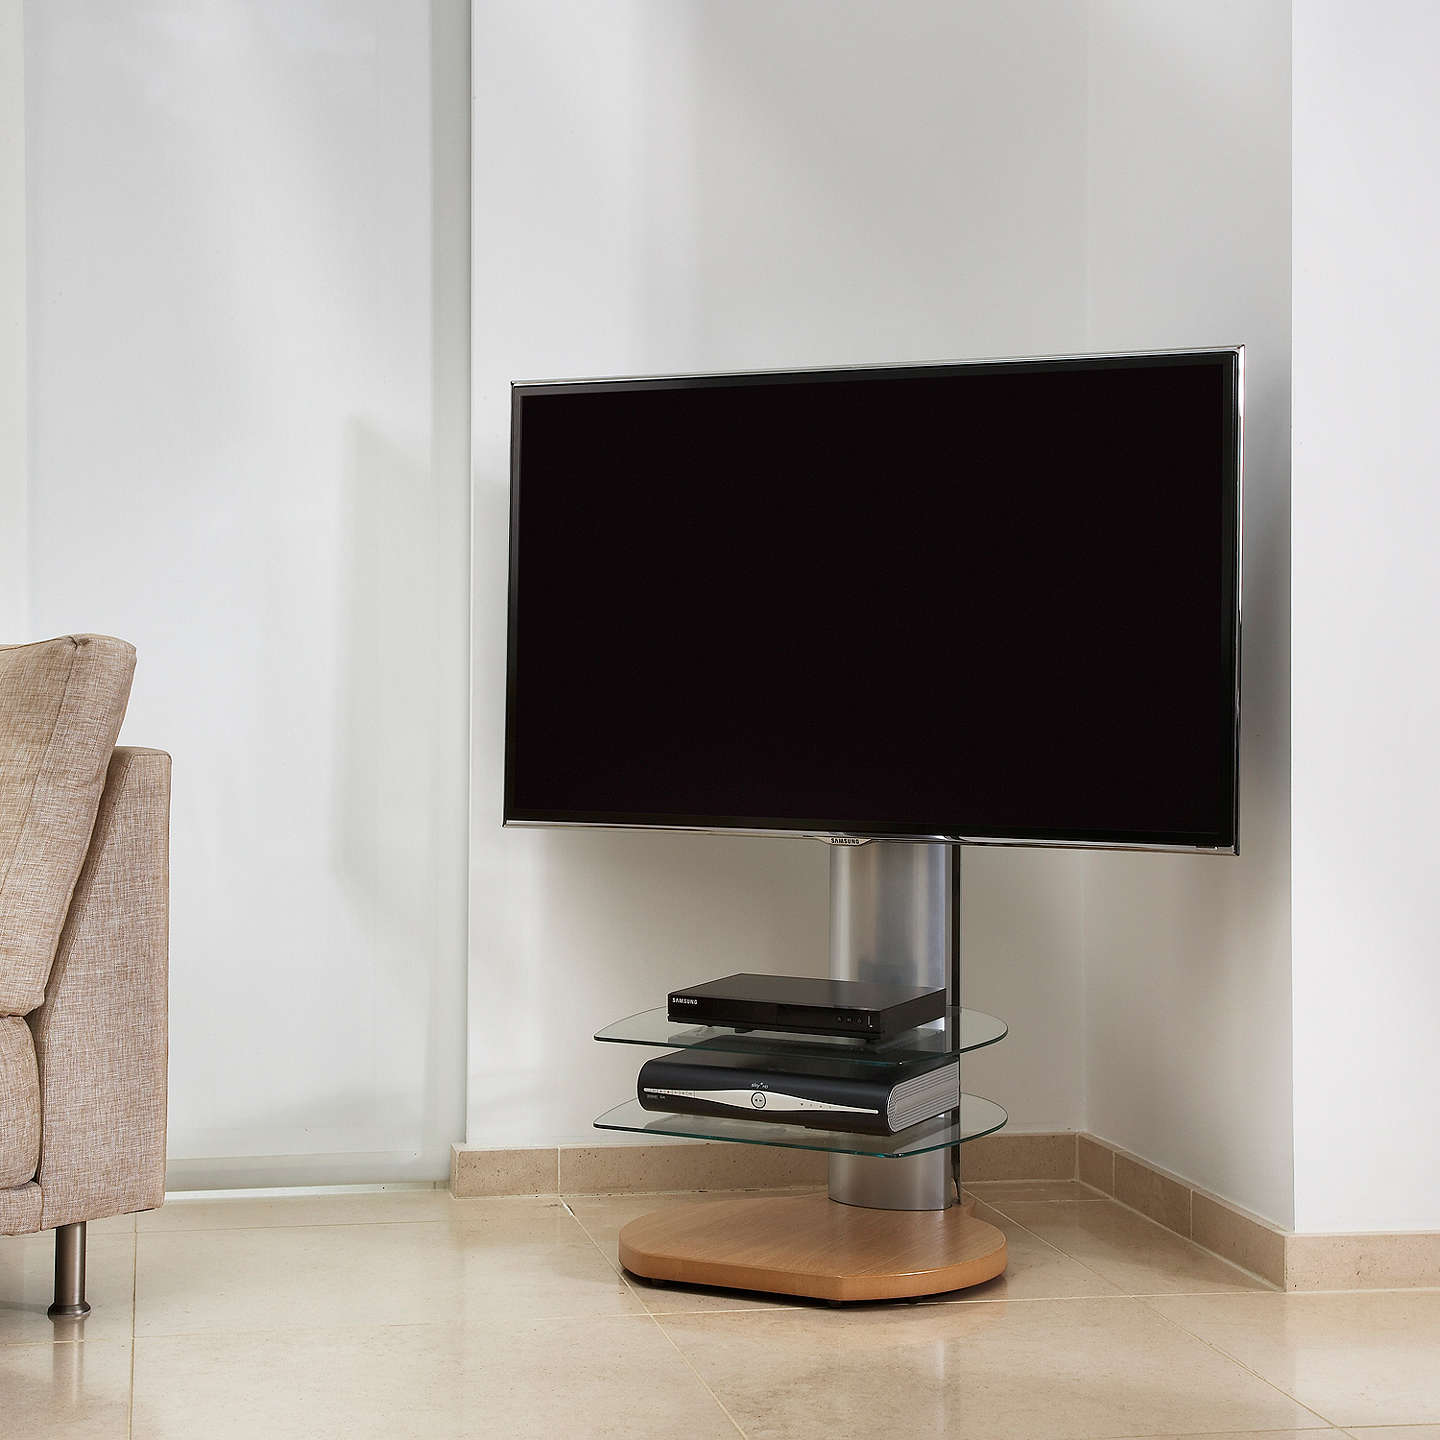 "BuyOff The Wall Origin II S4 Stand for TVs up to 55"" with Sound Bar Bracket, Oak Online at johnlewis.com"